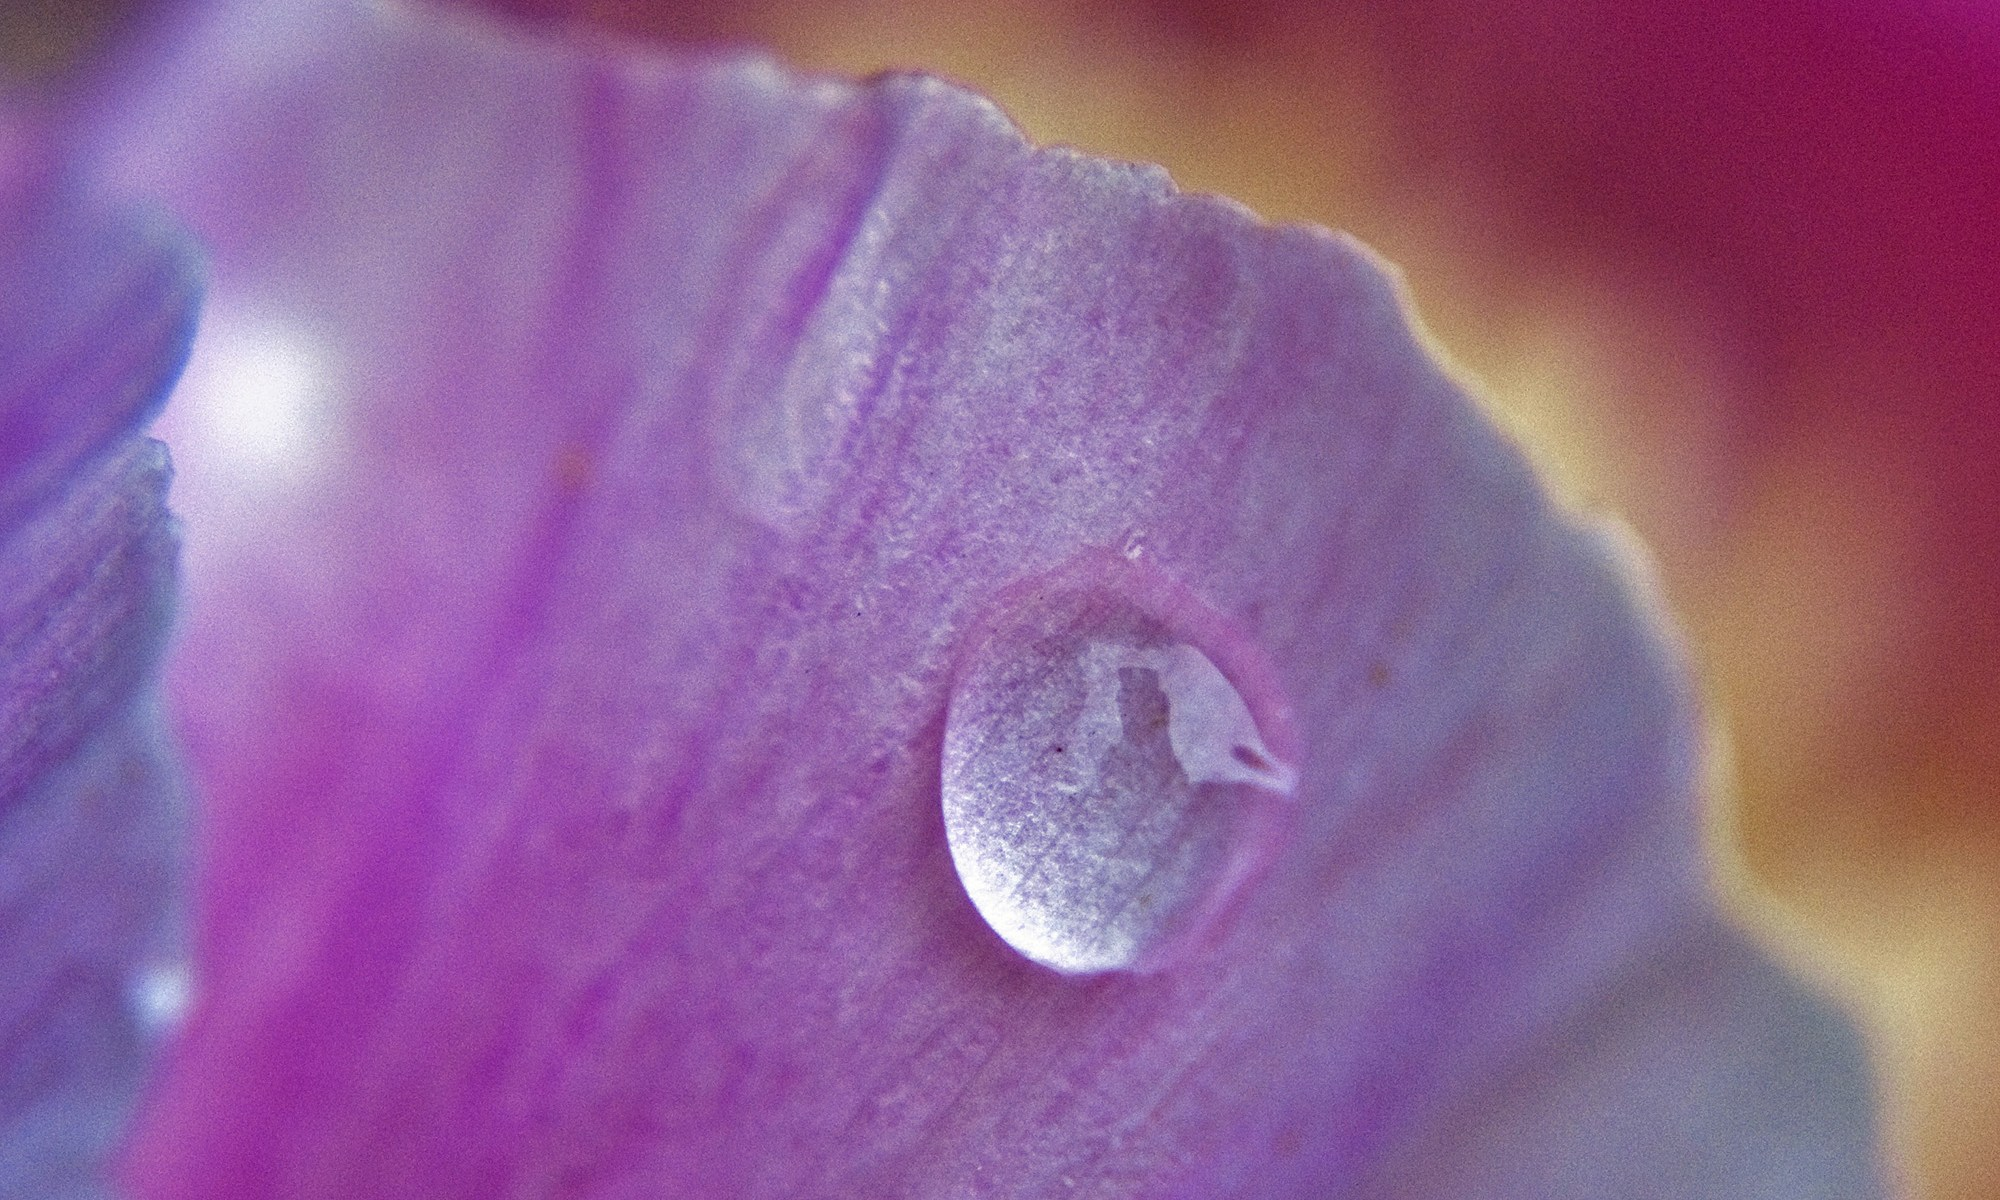 Drop of water on Pink Flower Petal